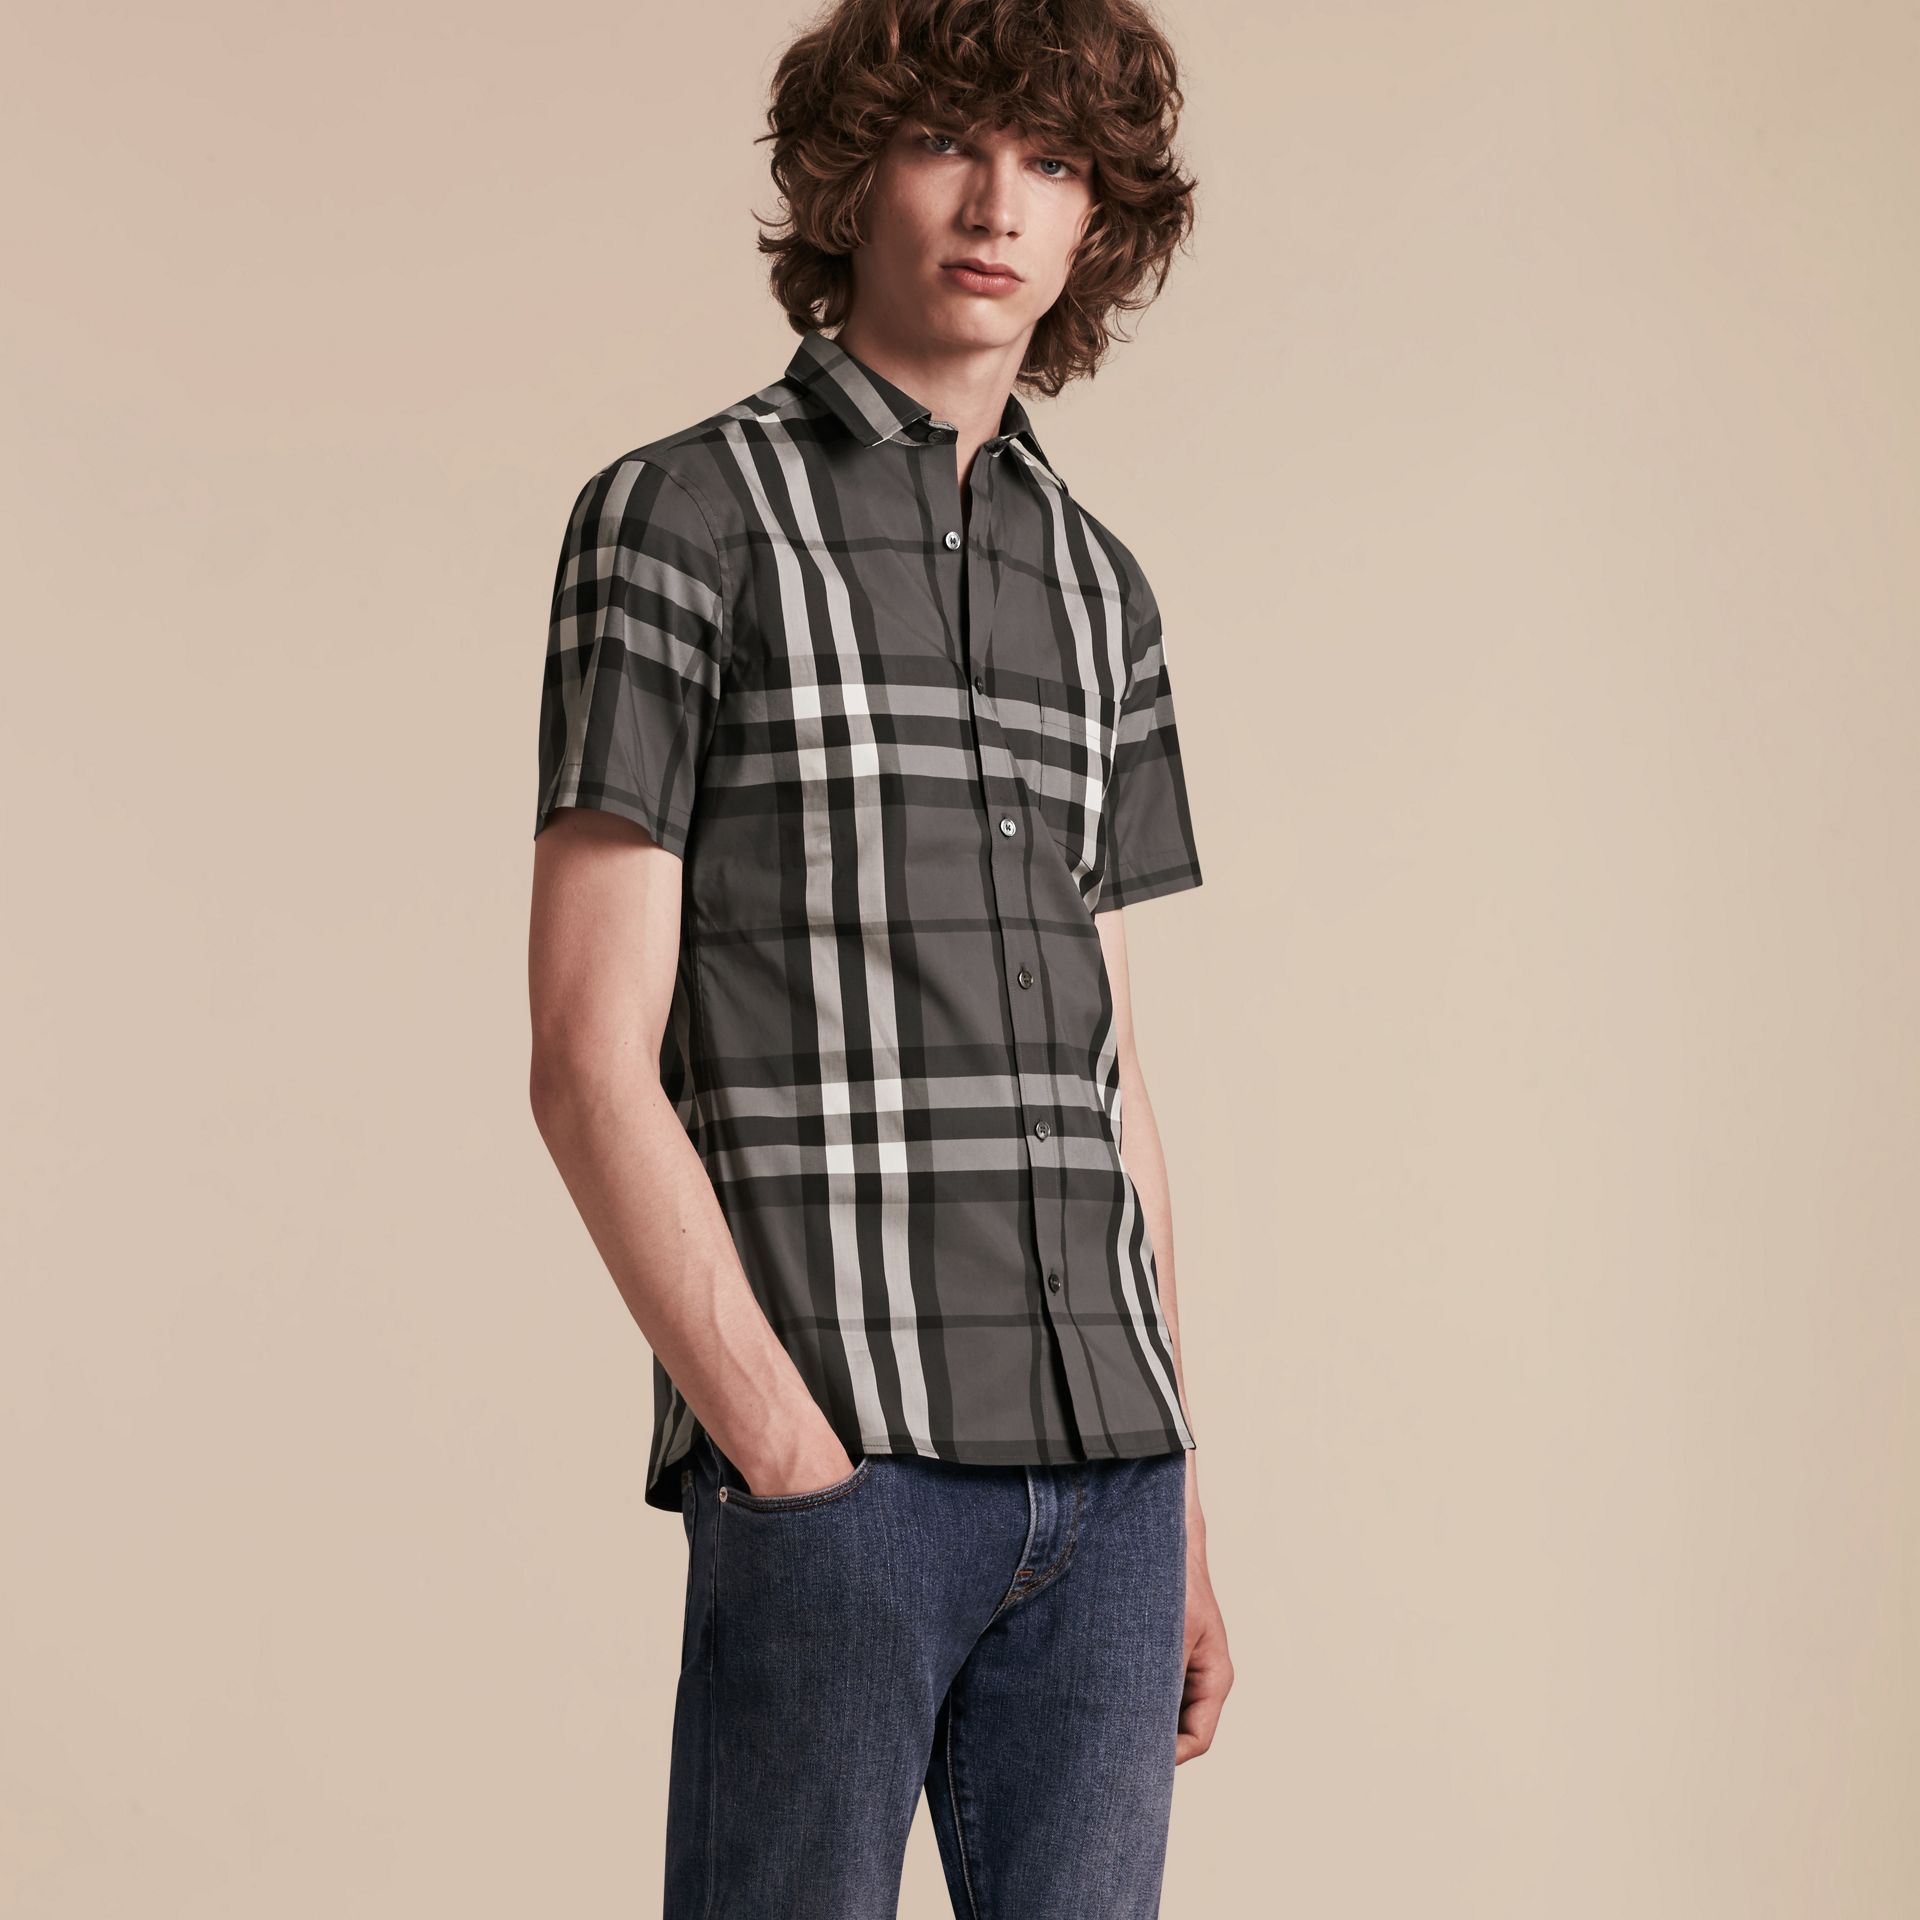 Charcoal Short-sleeved Check Stretch Cotton Shirt Charcoal - gallery image 6